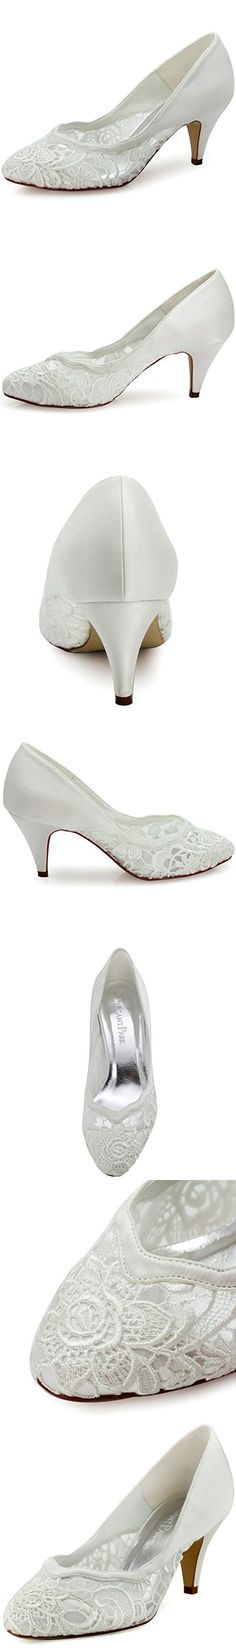 ElegantPark Women s Closed Toe Cone Heel Wave Edge Cutting Lace Evening Prom  Bridal Wedding Pumps Ivory US 6 86ec832862b2